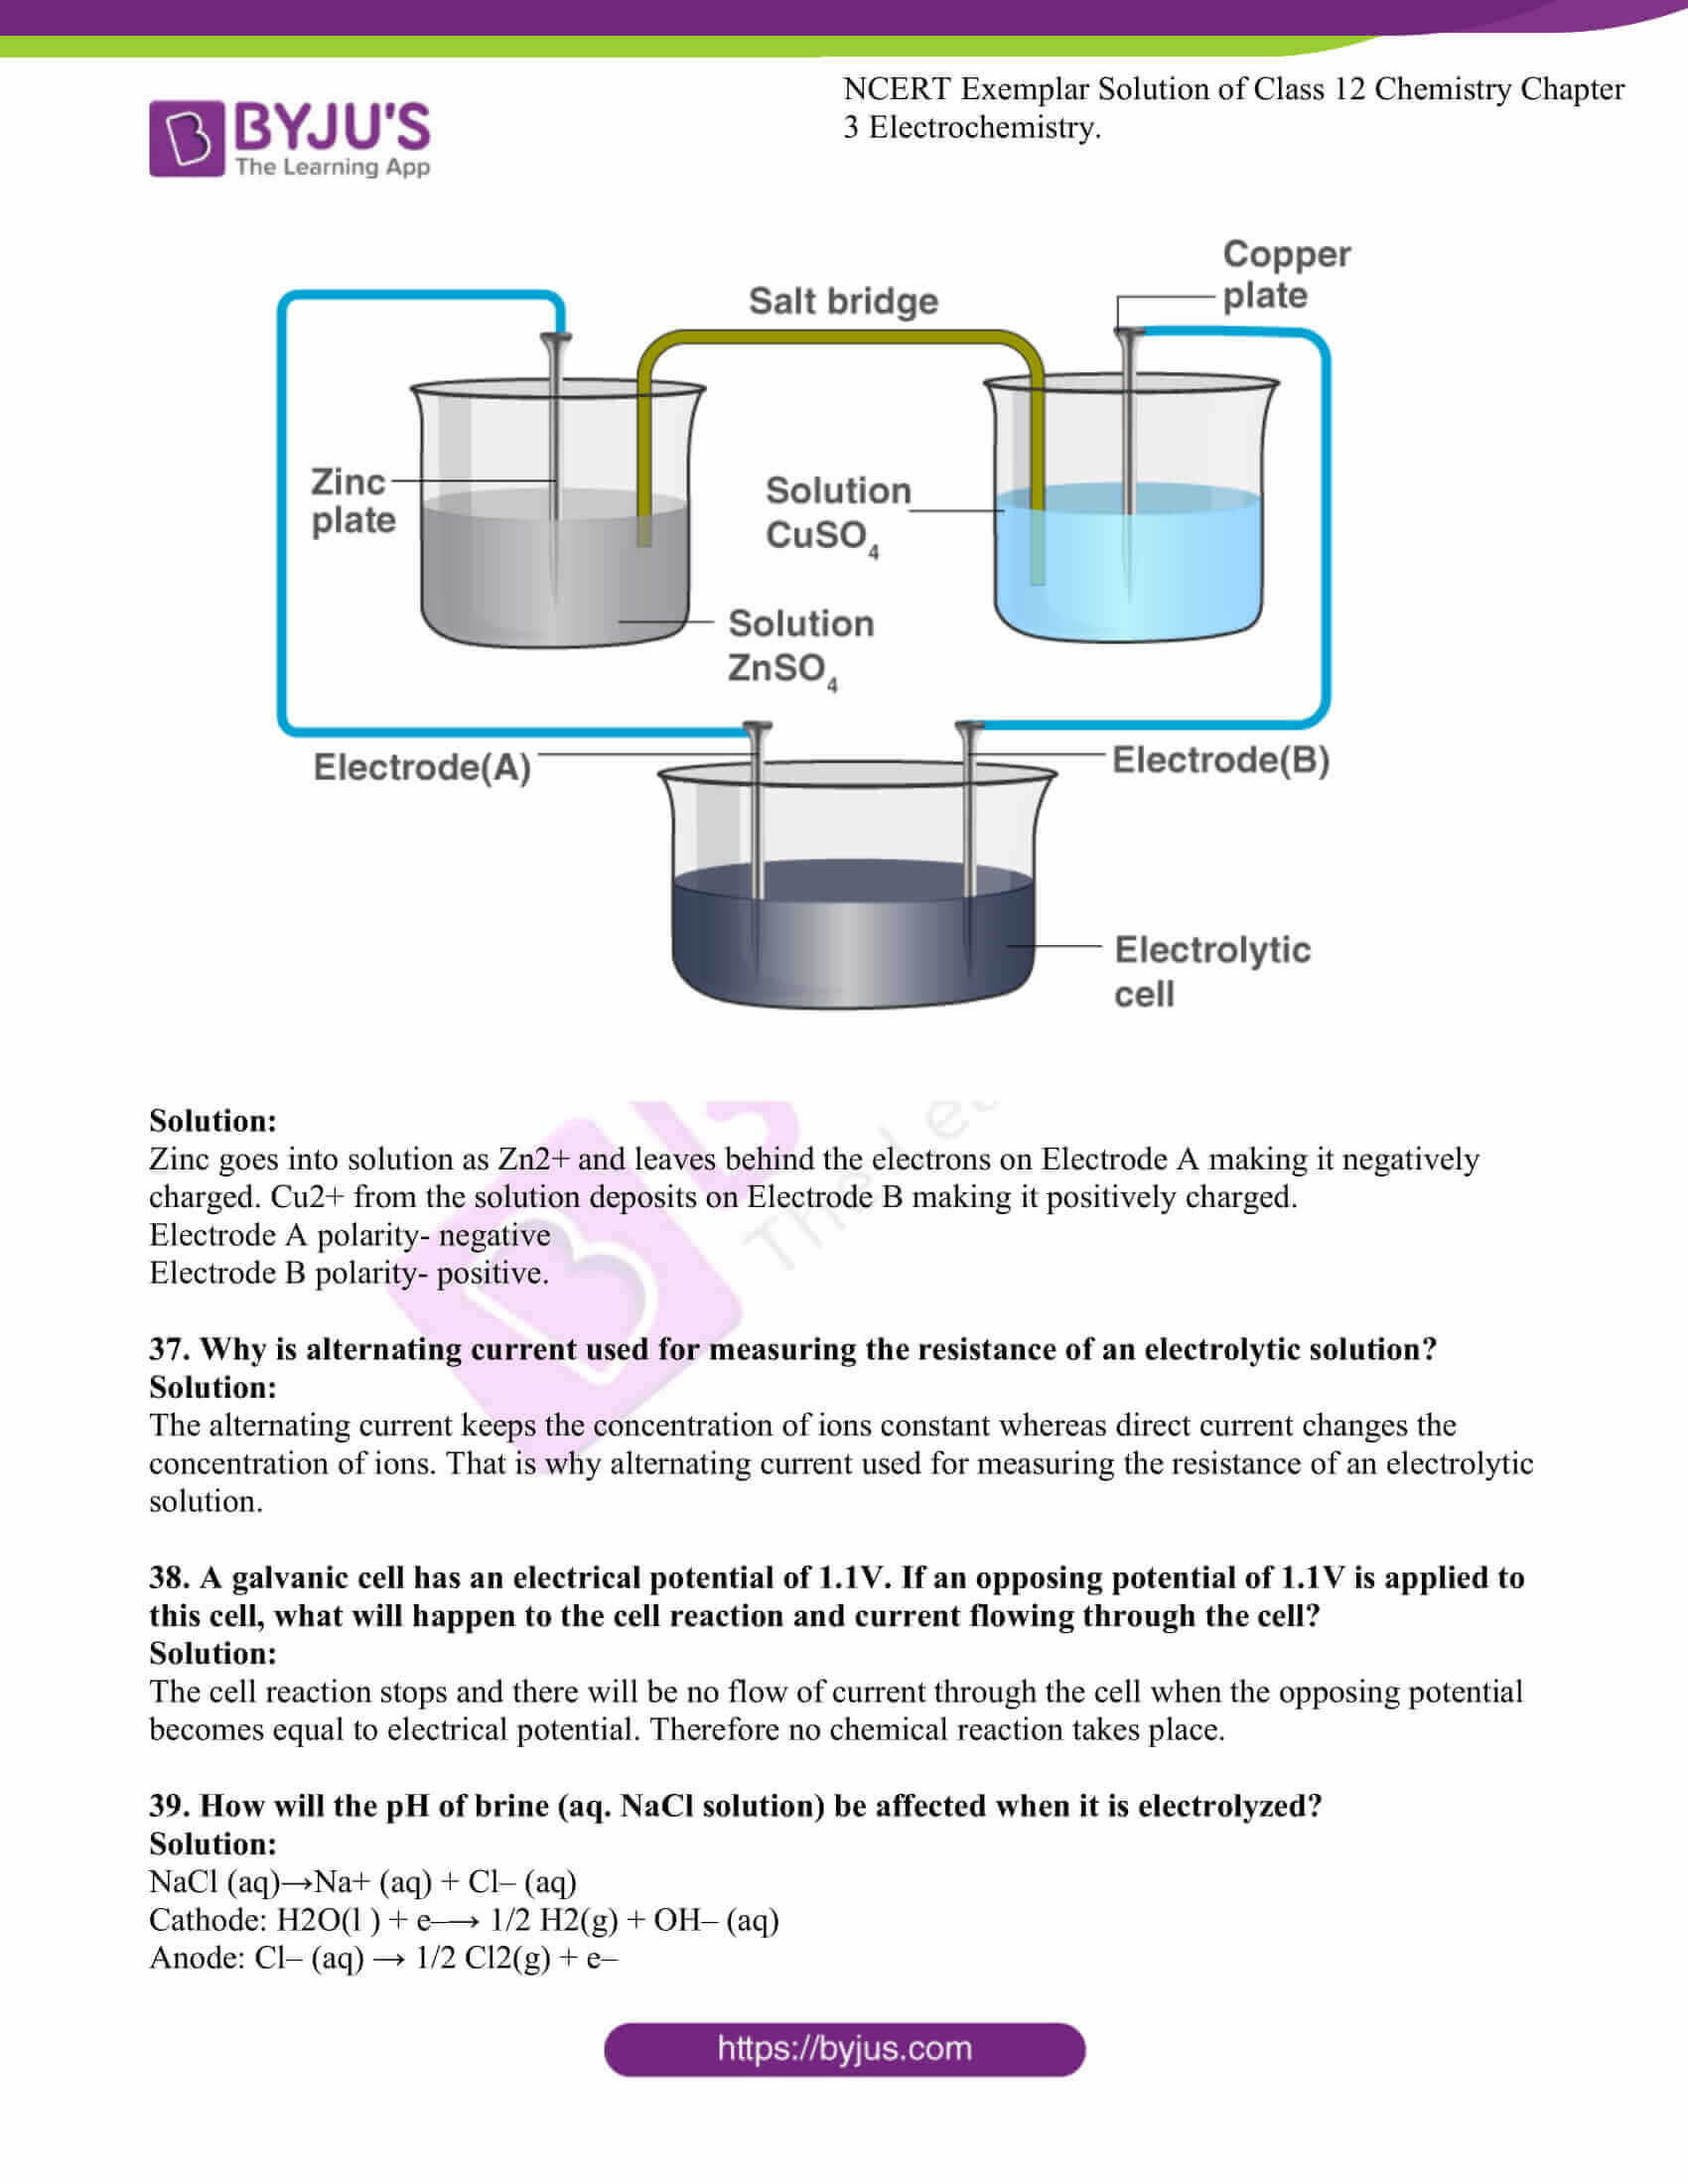 ncert exemplar solutions for class 12 chemistry chapter 3 electrochemistry 08